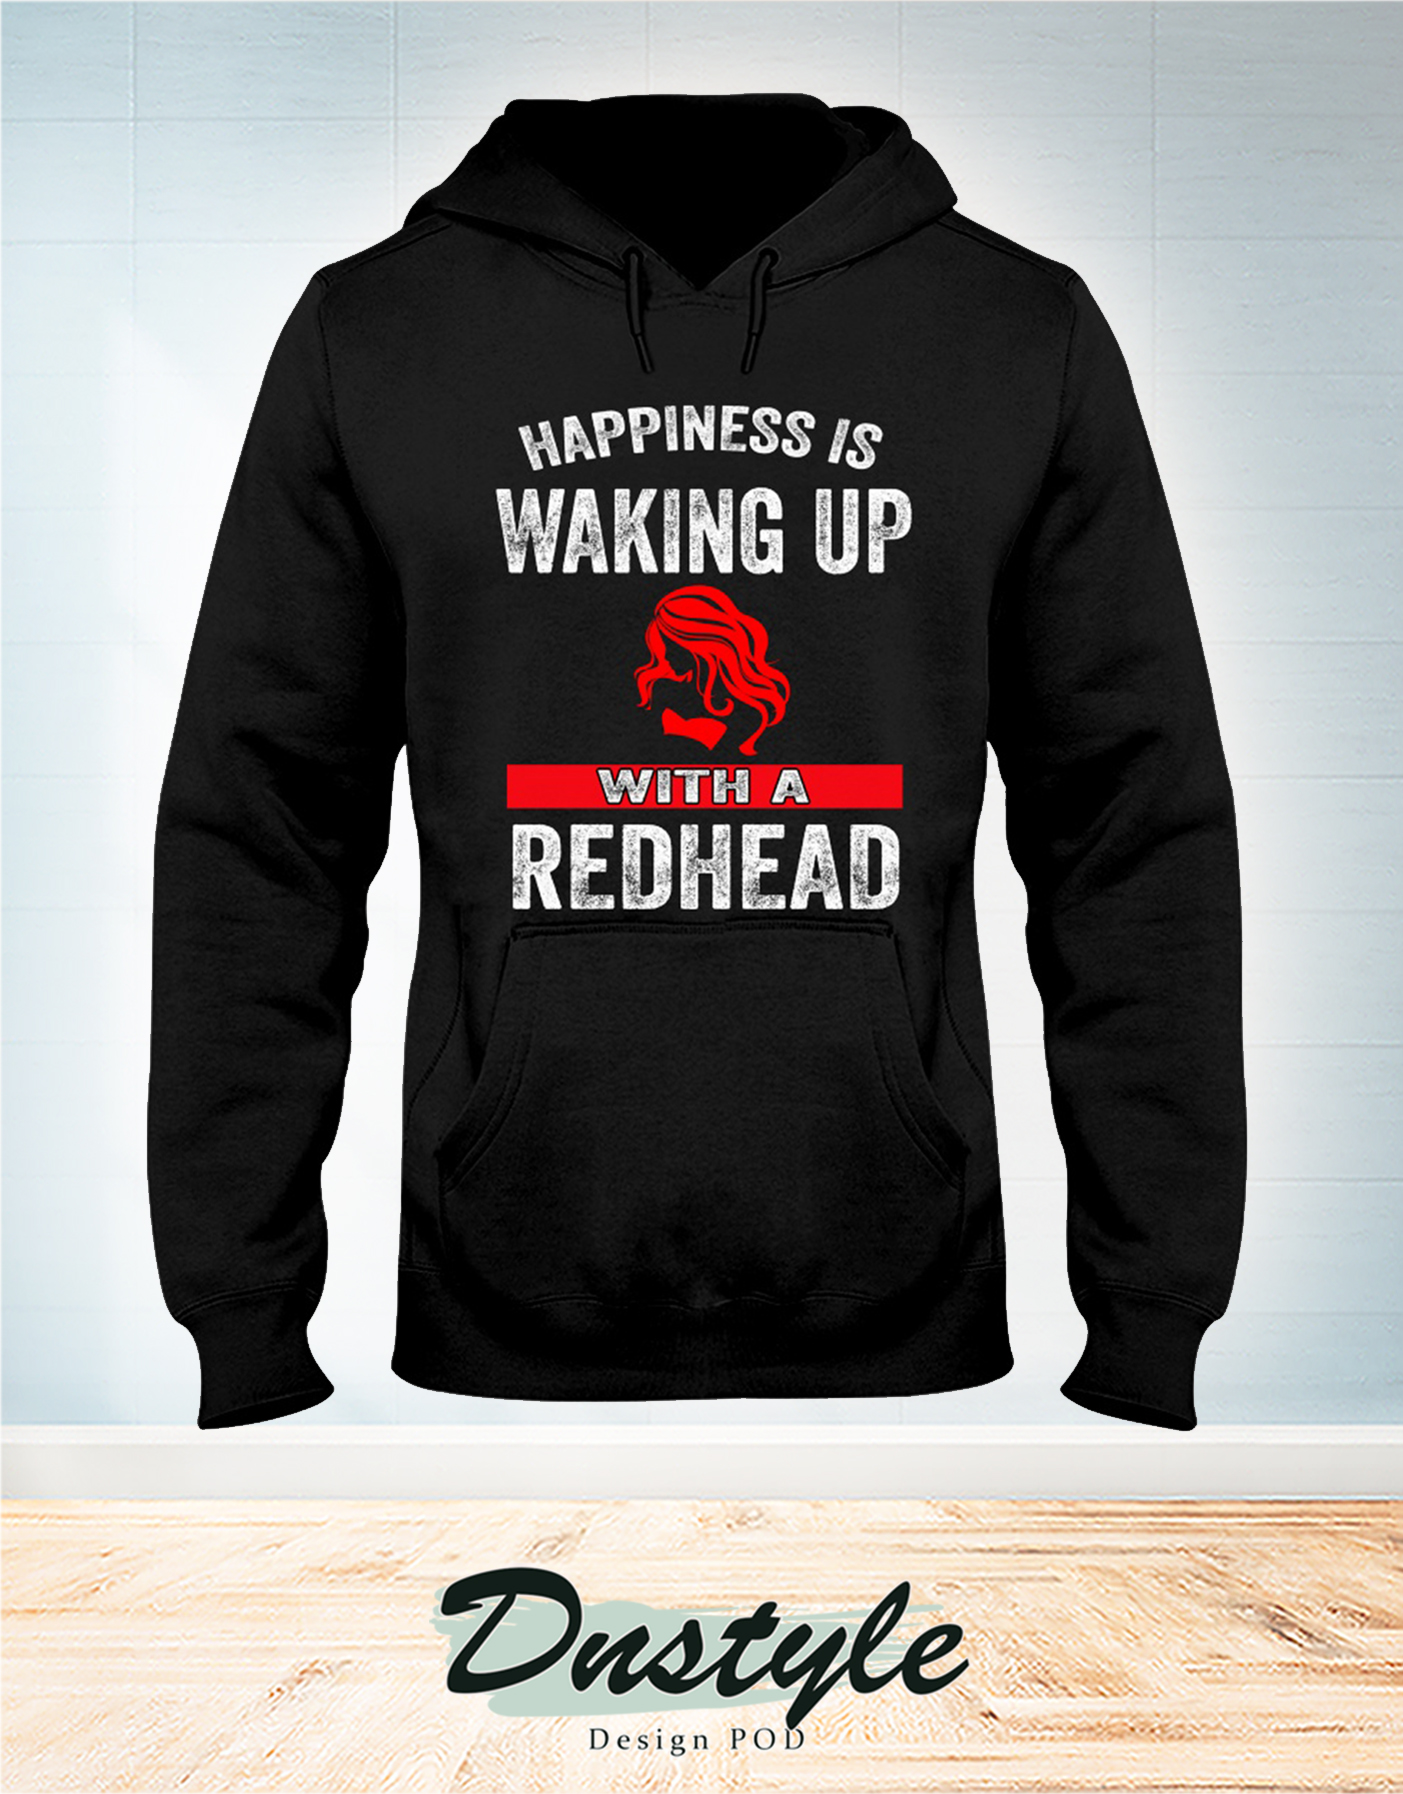 Happiness is waking up with a redhead hoodie